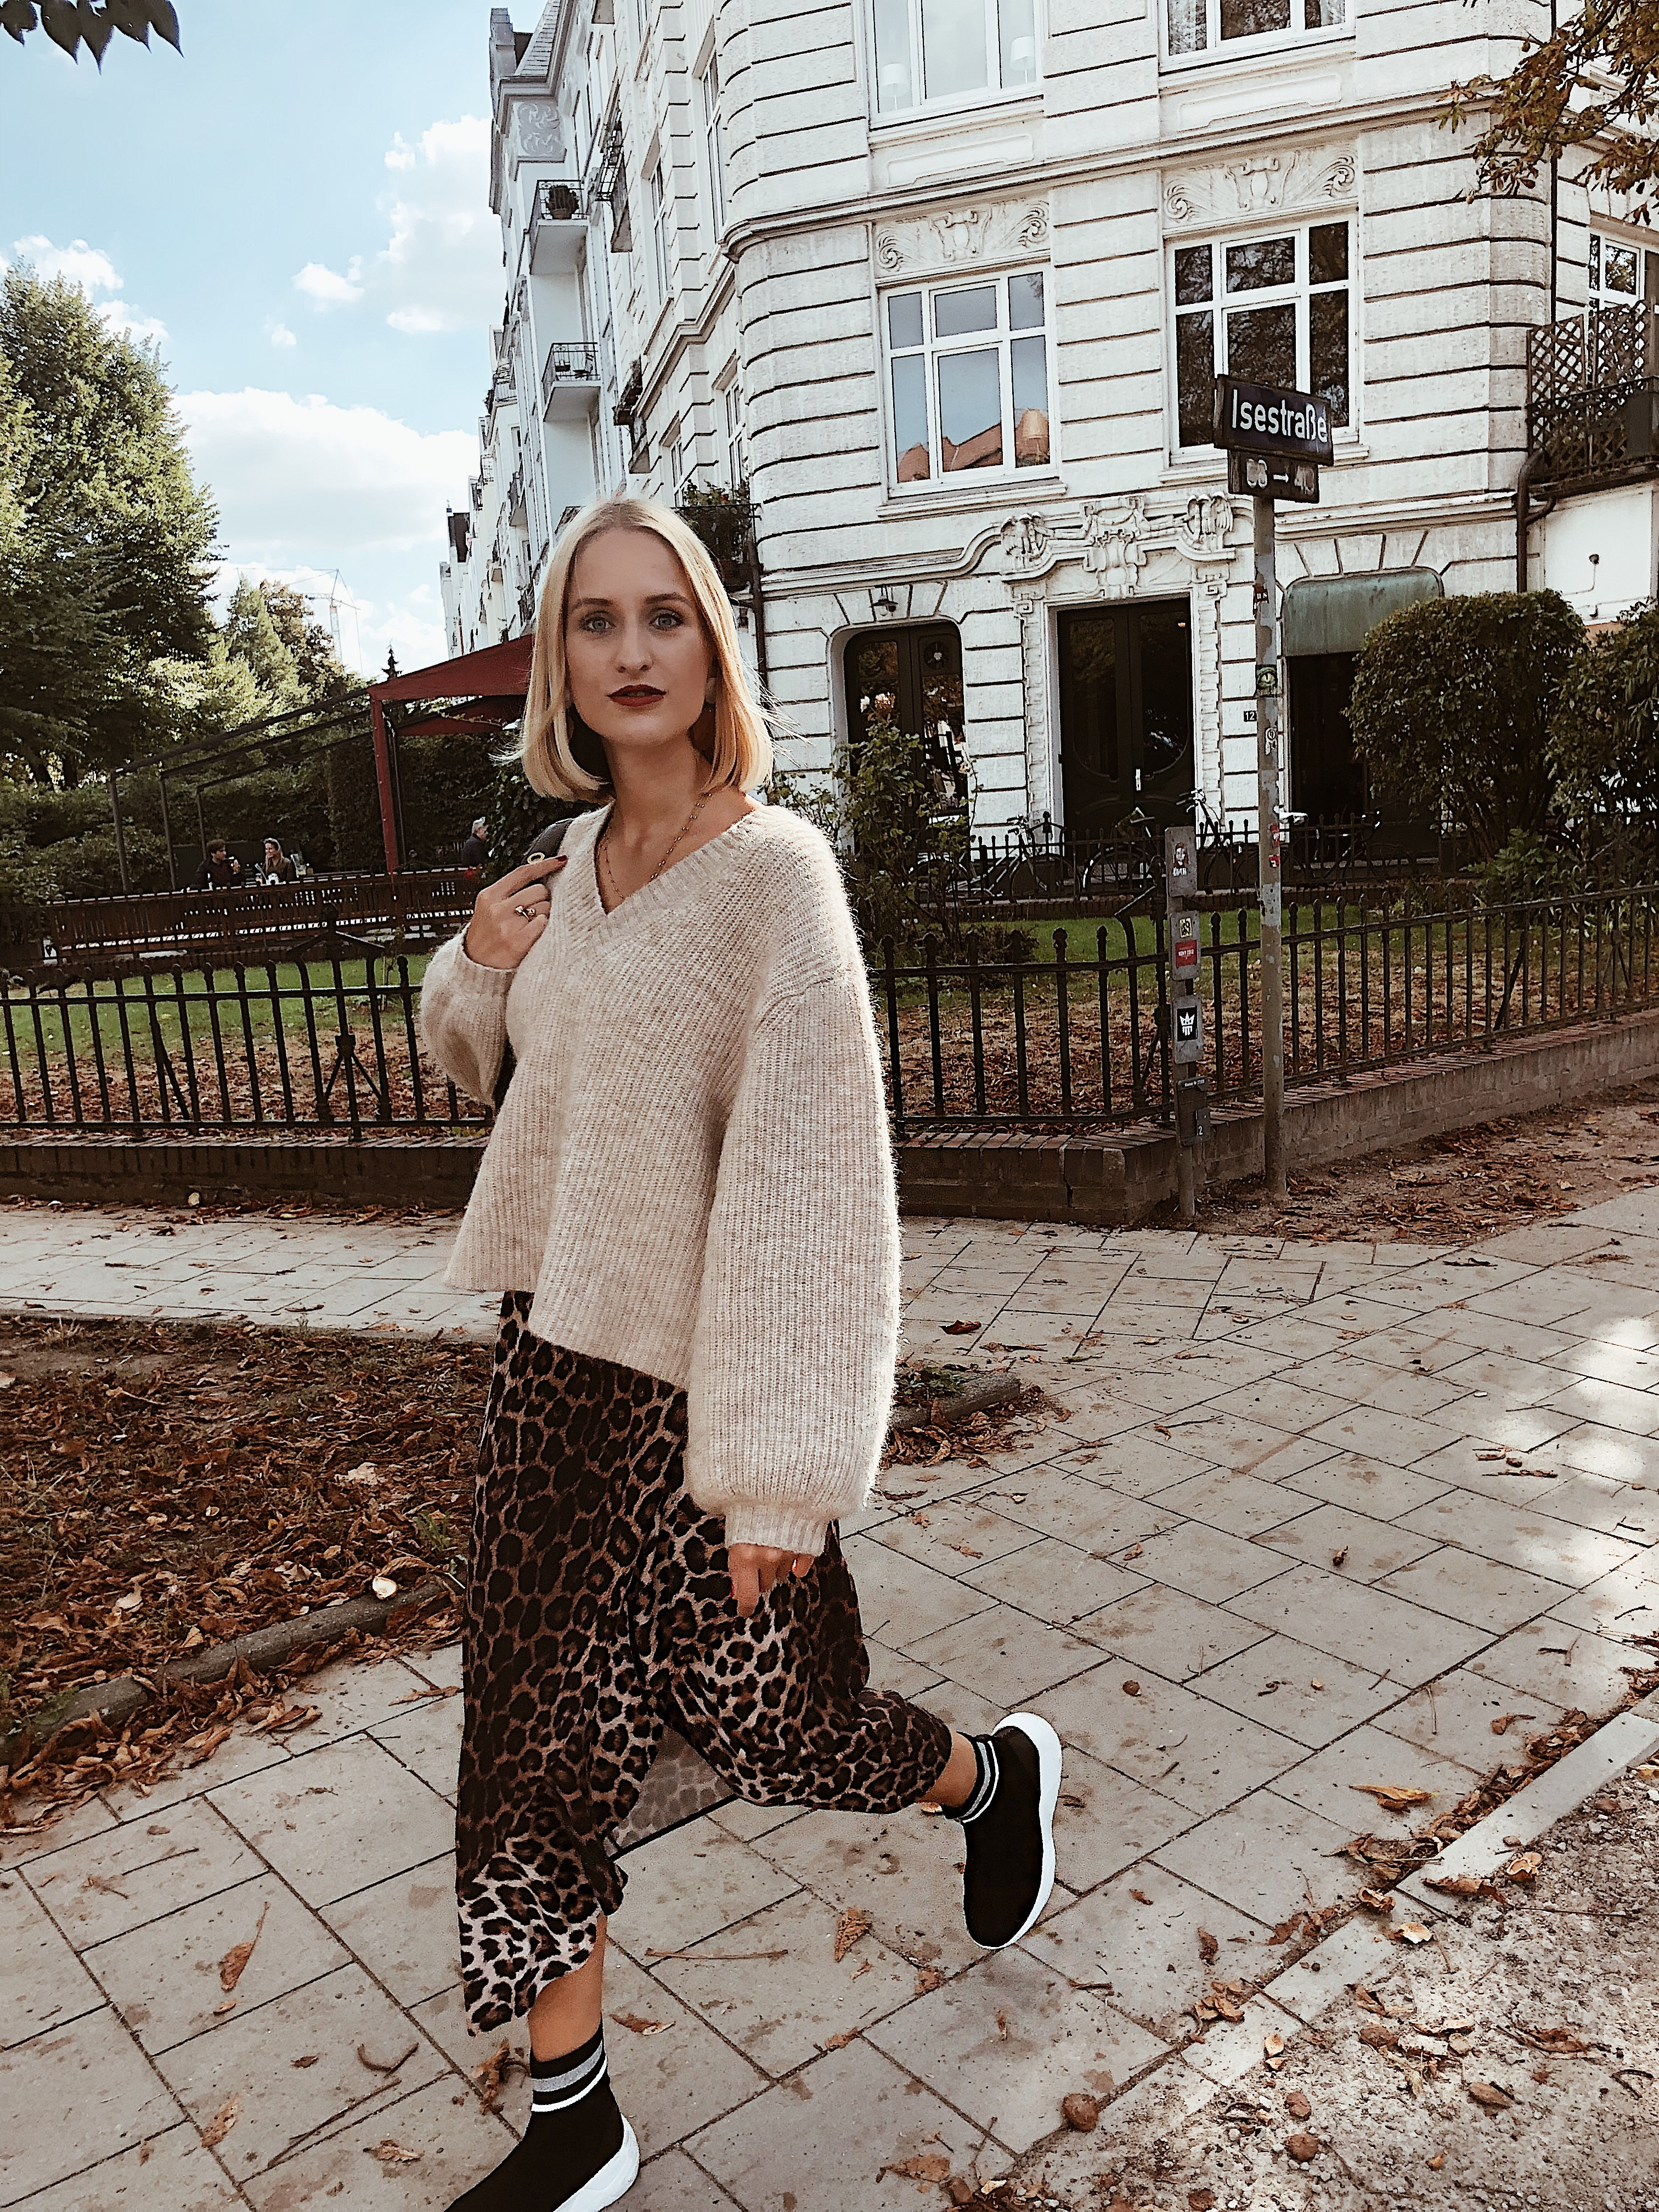 louisatheresa Herbstliebe Sock Boots Trend Outfit